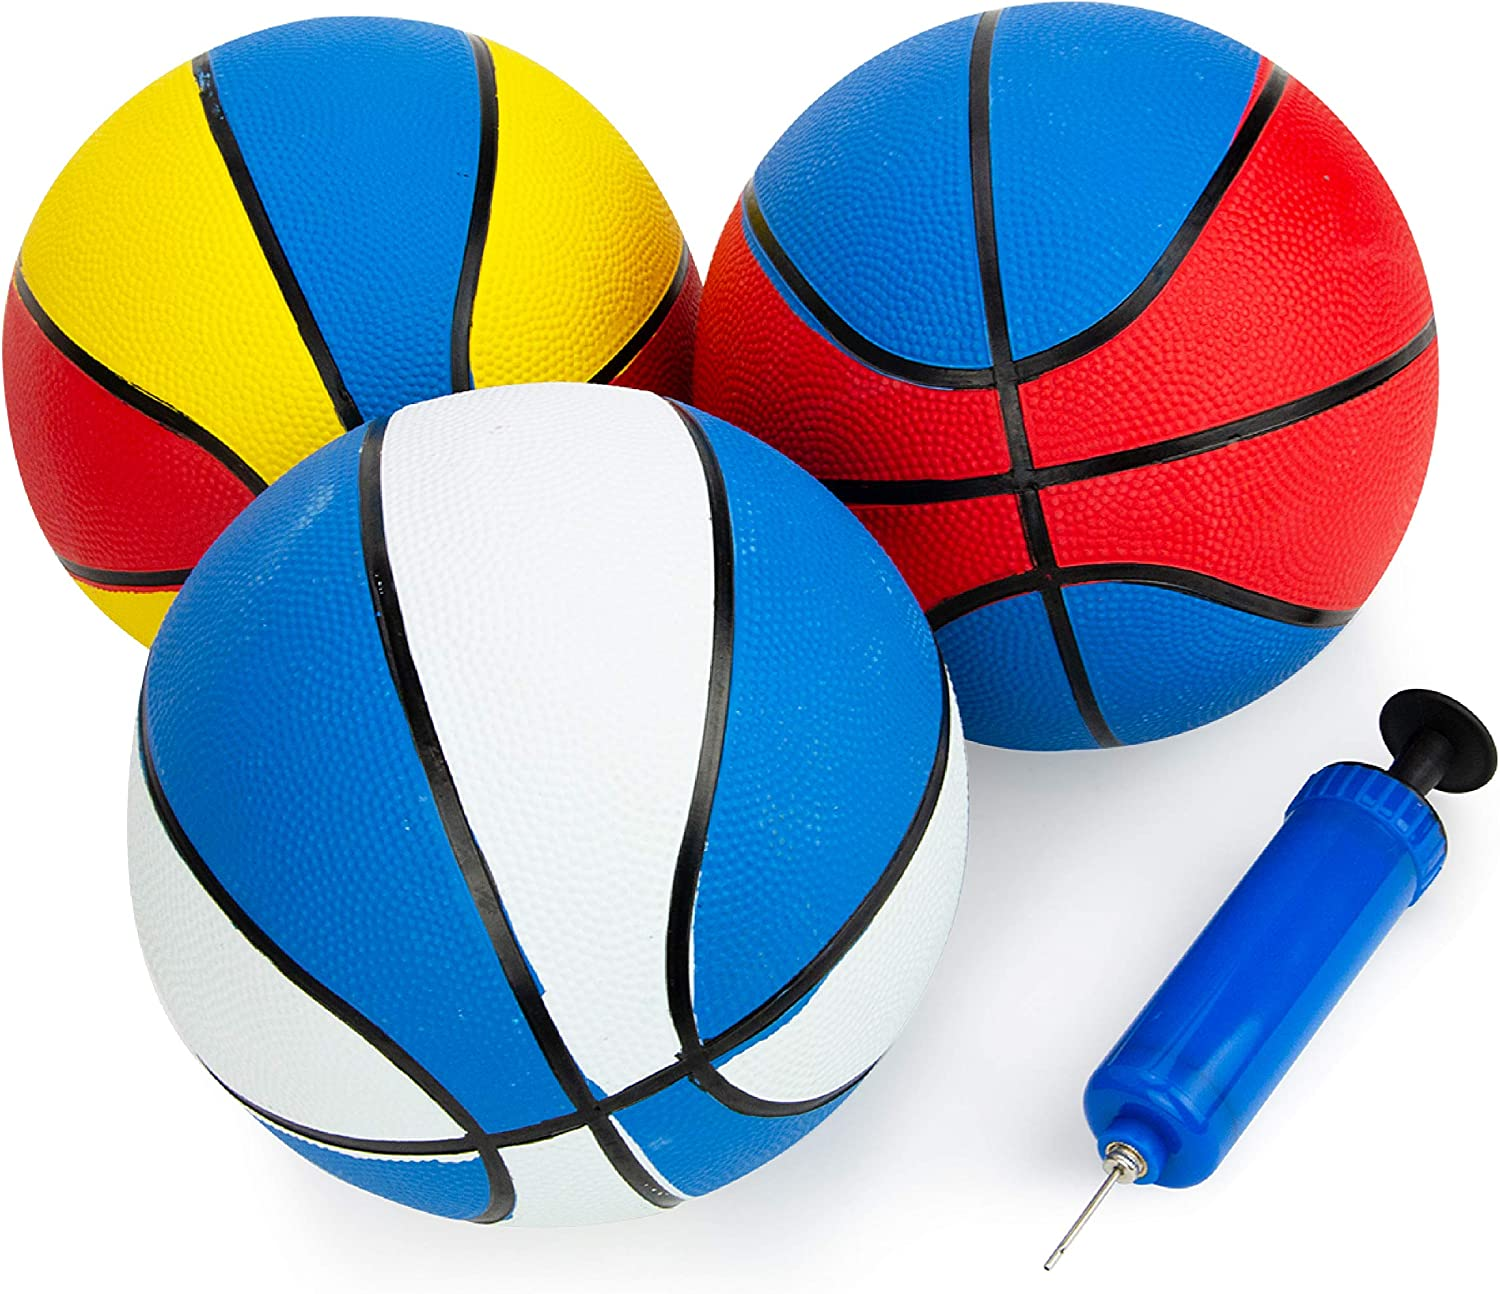 Boley Rubber Basketball Set with Pump - 3 Pk 22 inch Size 3 Indo